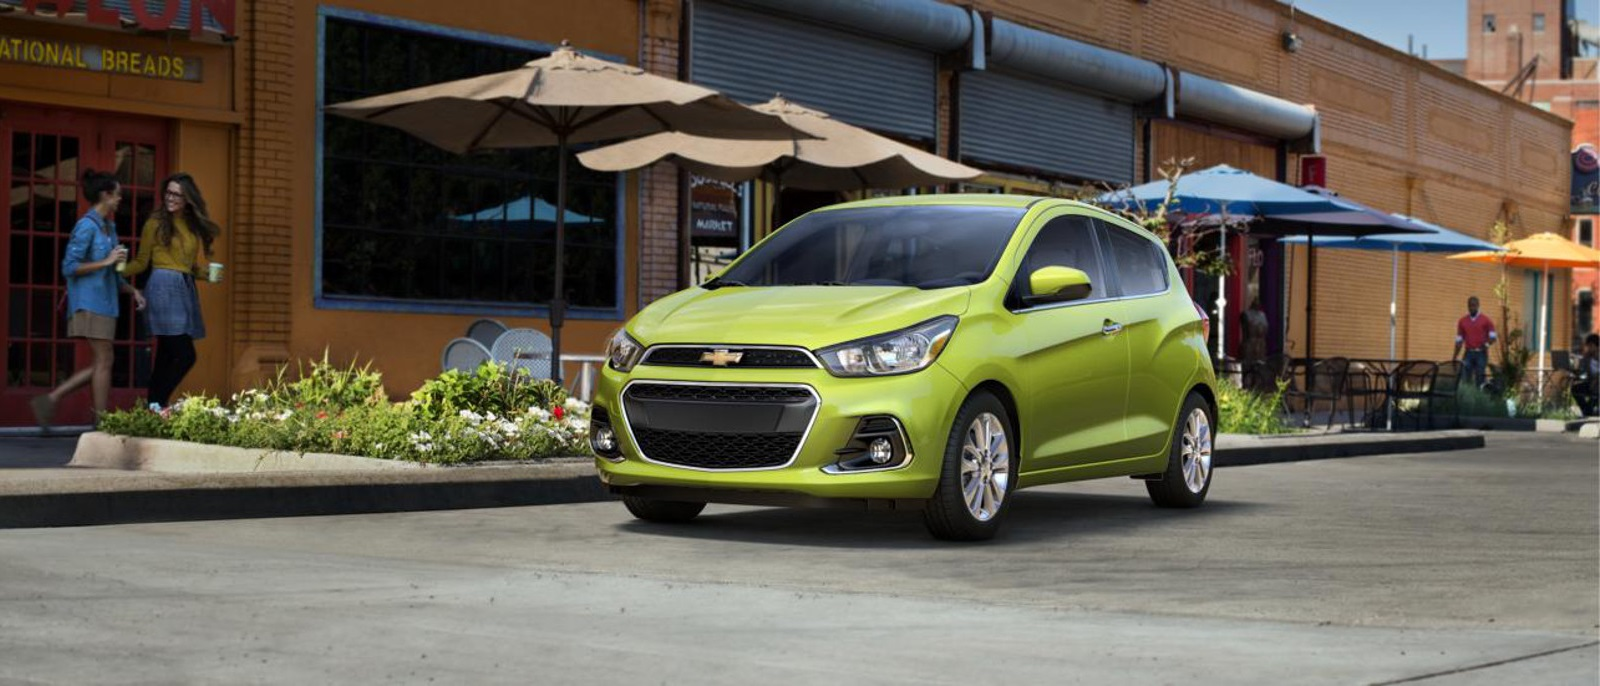 The redesigned 2016 Chevrolet Spark is at Tom Gill Chevrolet